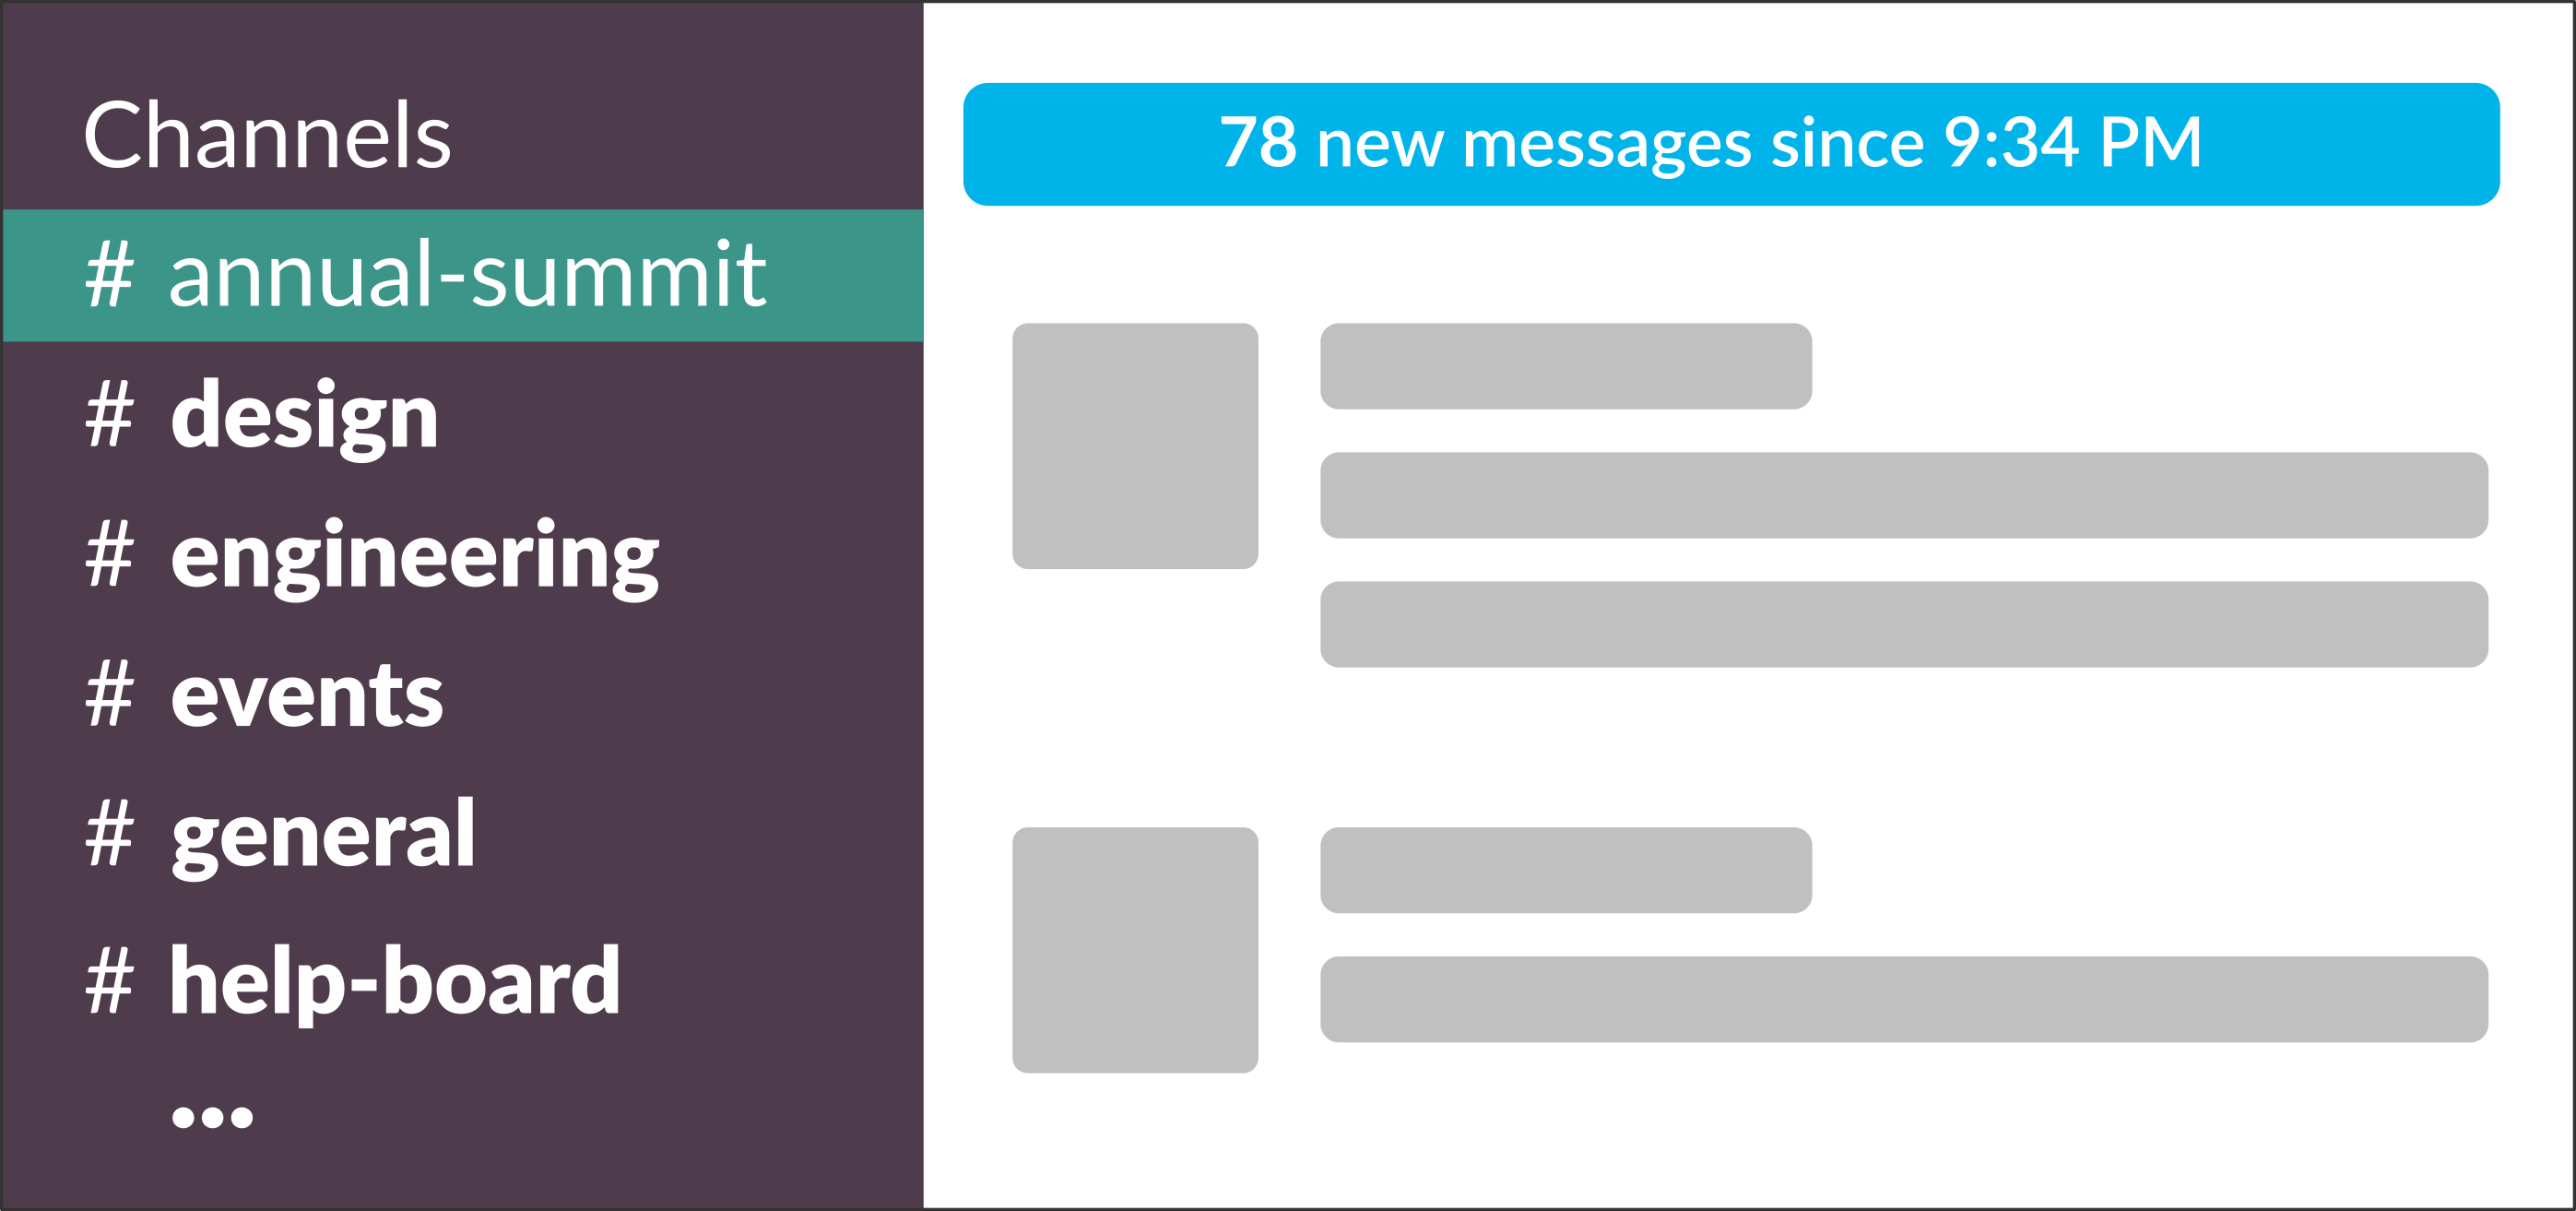 bcd3ad6598a62f The lack of organization and context in Slack channels means that anyone  using Slack heavily has to manually scan through hundreds of messages a day  to find ...